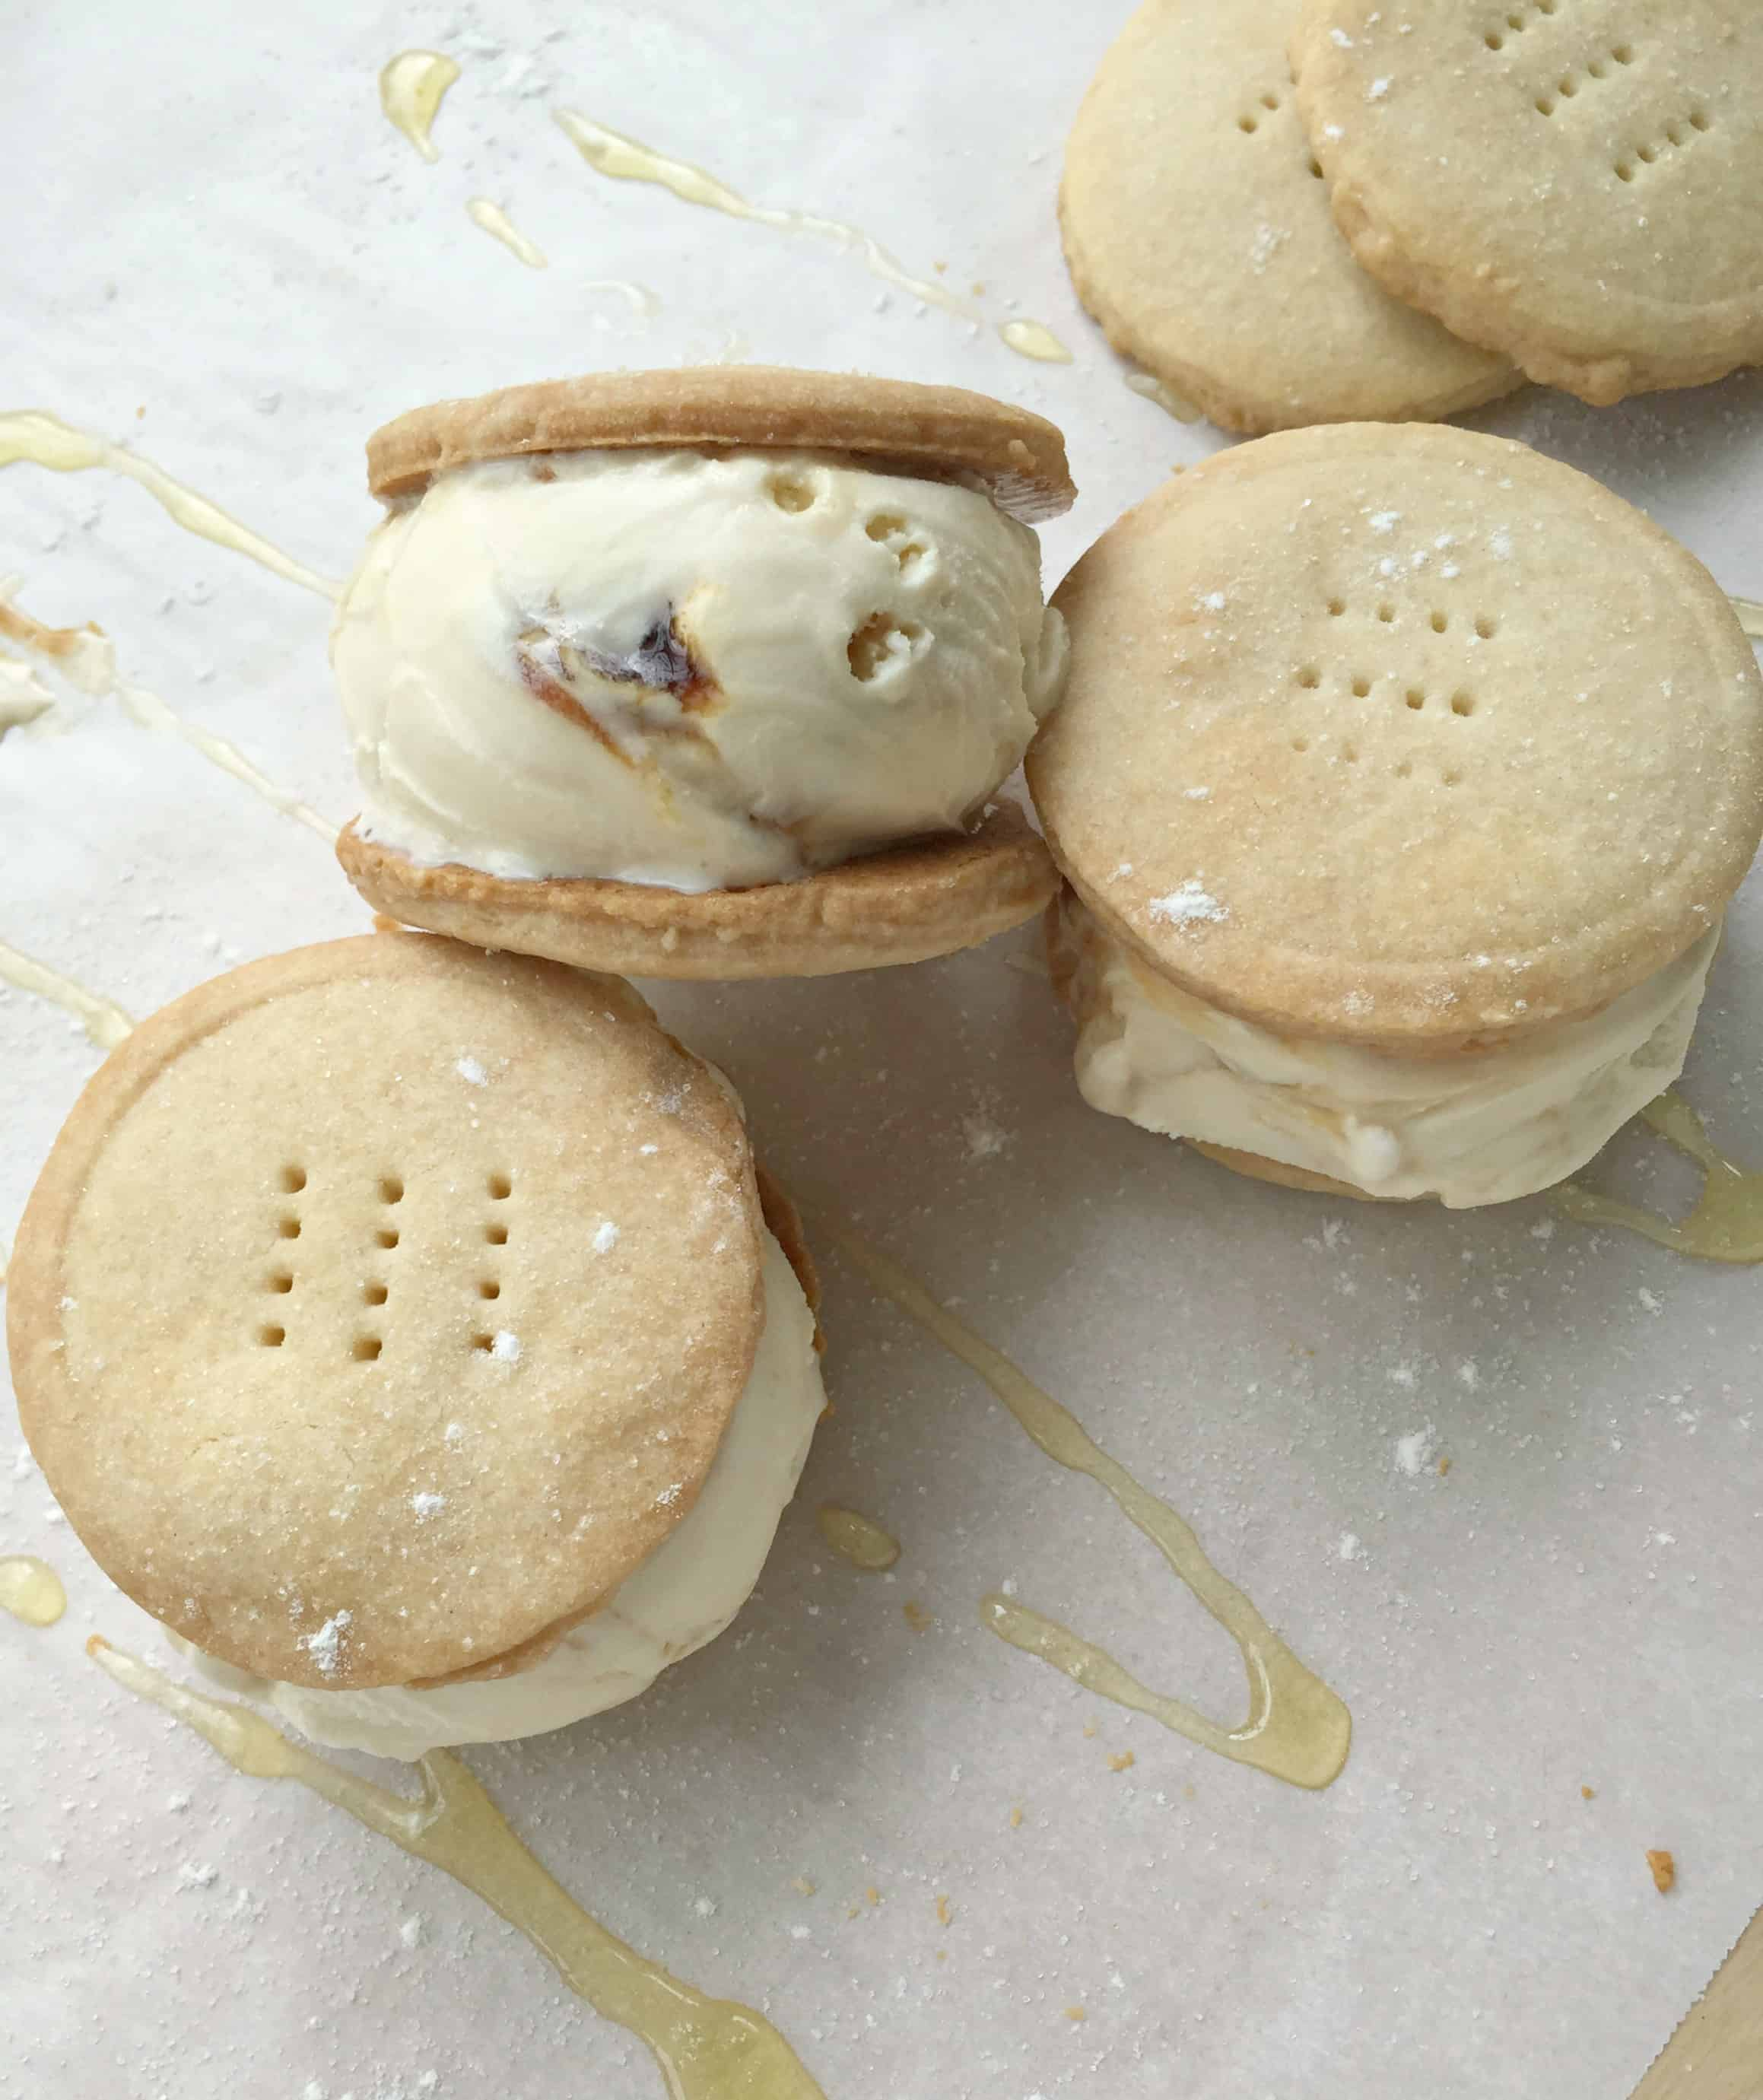 Goat Cheese & Honey Shortbread Ice Cream Sandwiches